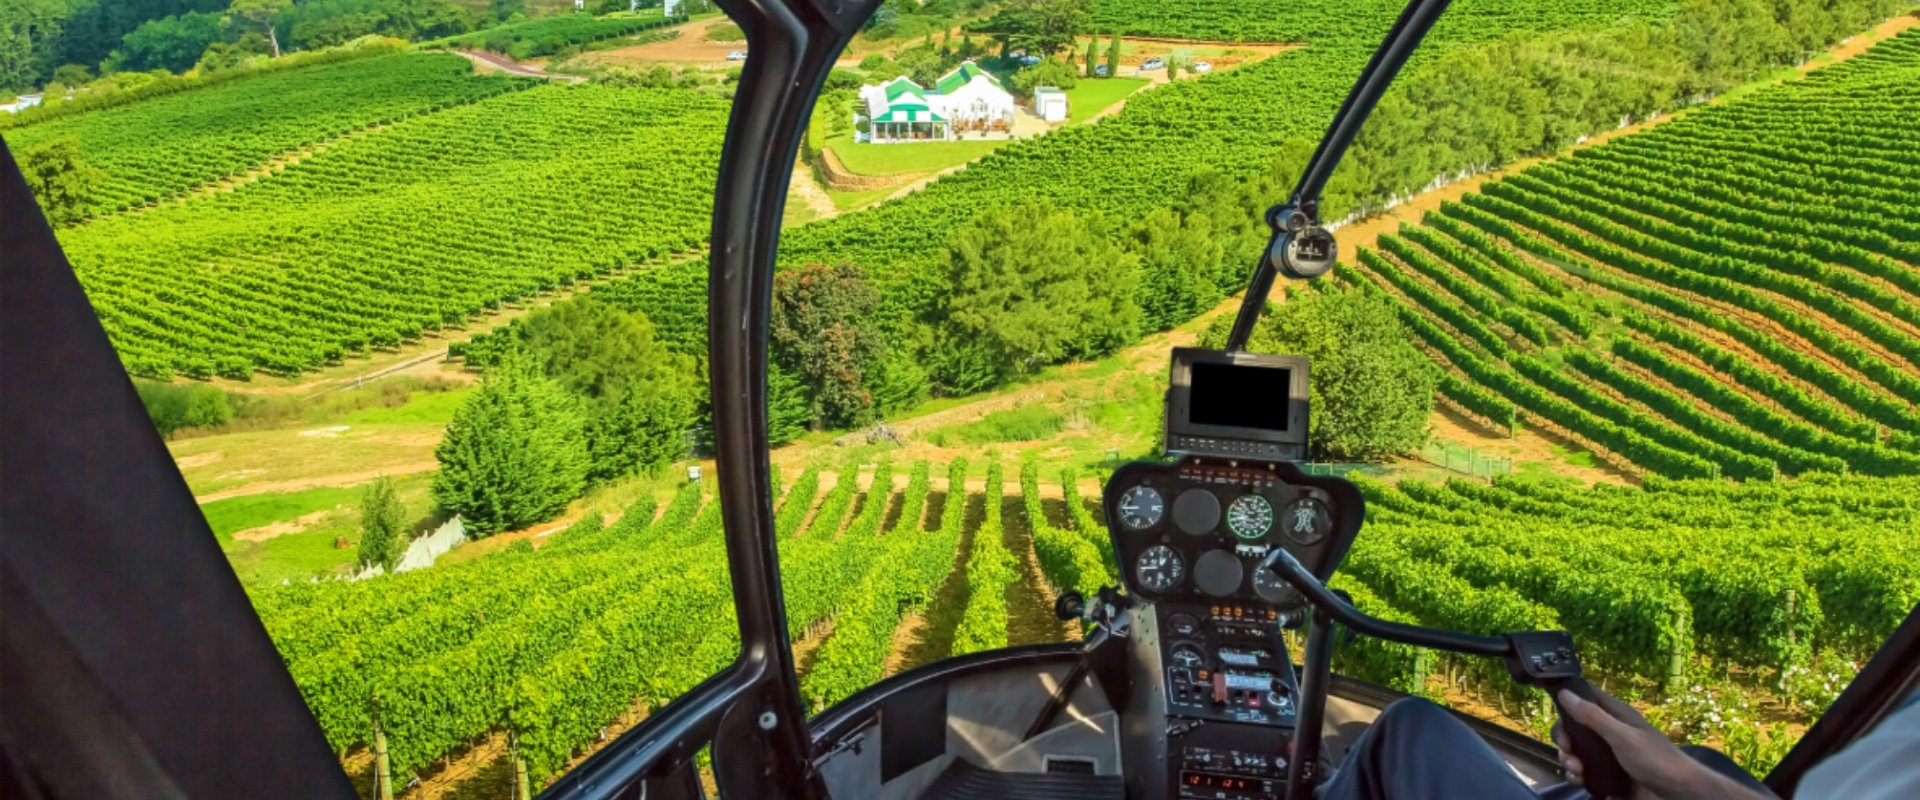 Hop in a helicopter and touch down in the winelands for a delectable lunch